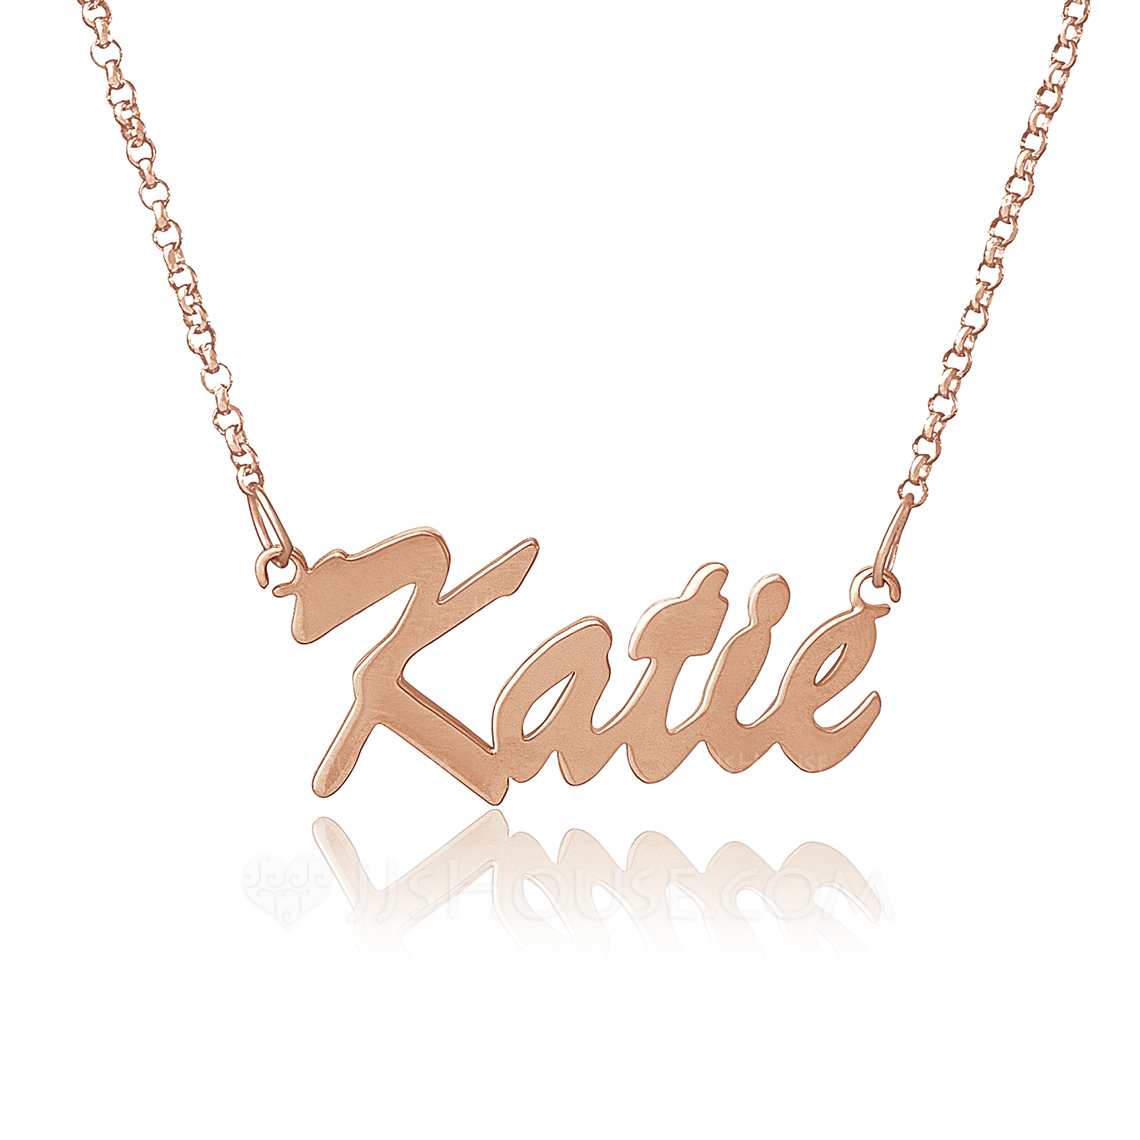 Custom 18k Rose Gold Plated Name Necklace - Birthday Gifts Mother's Day Gifts